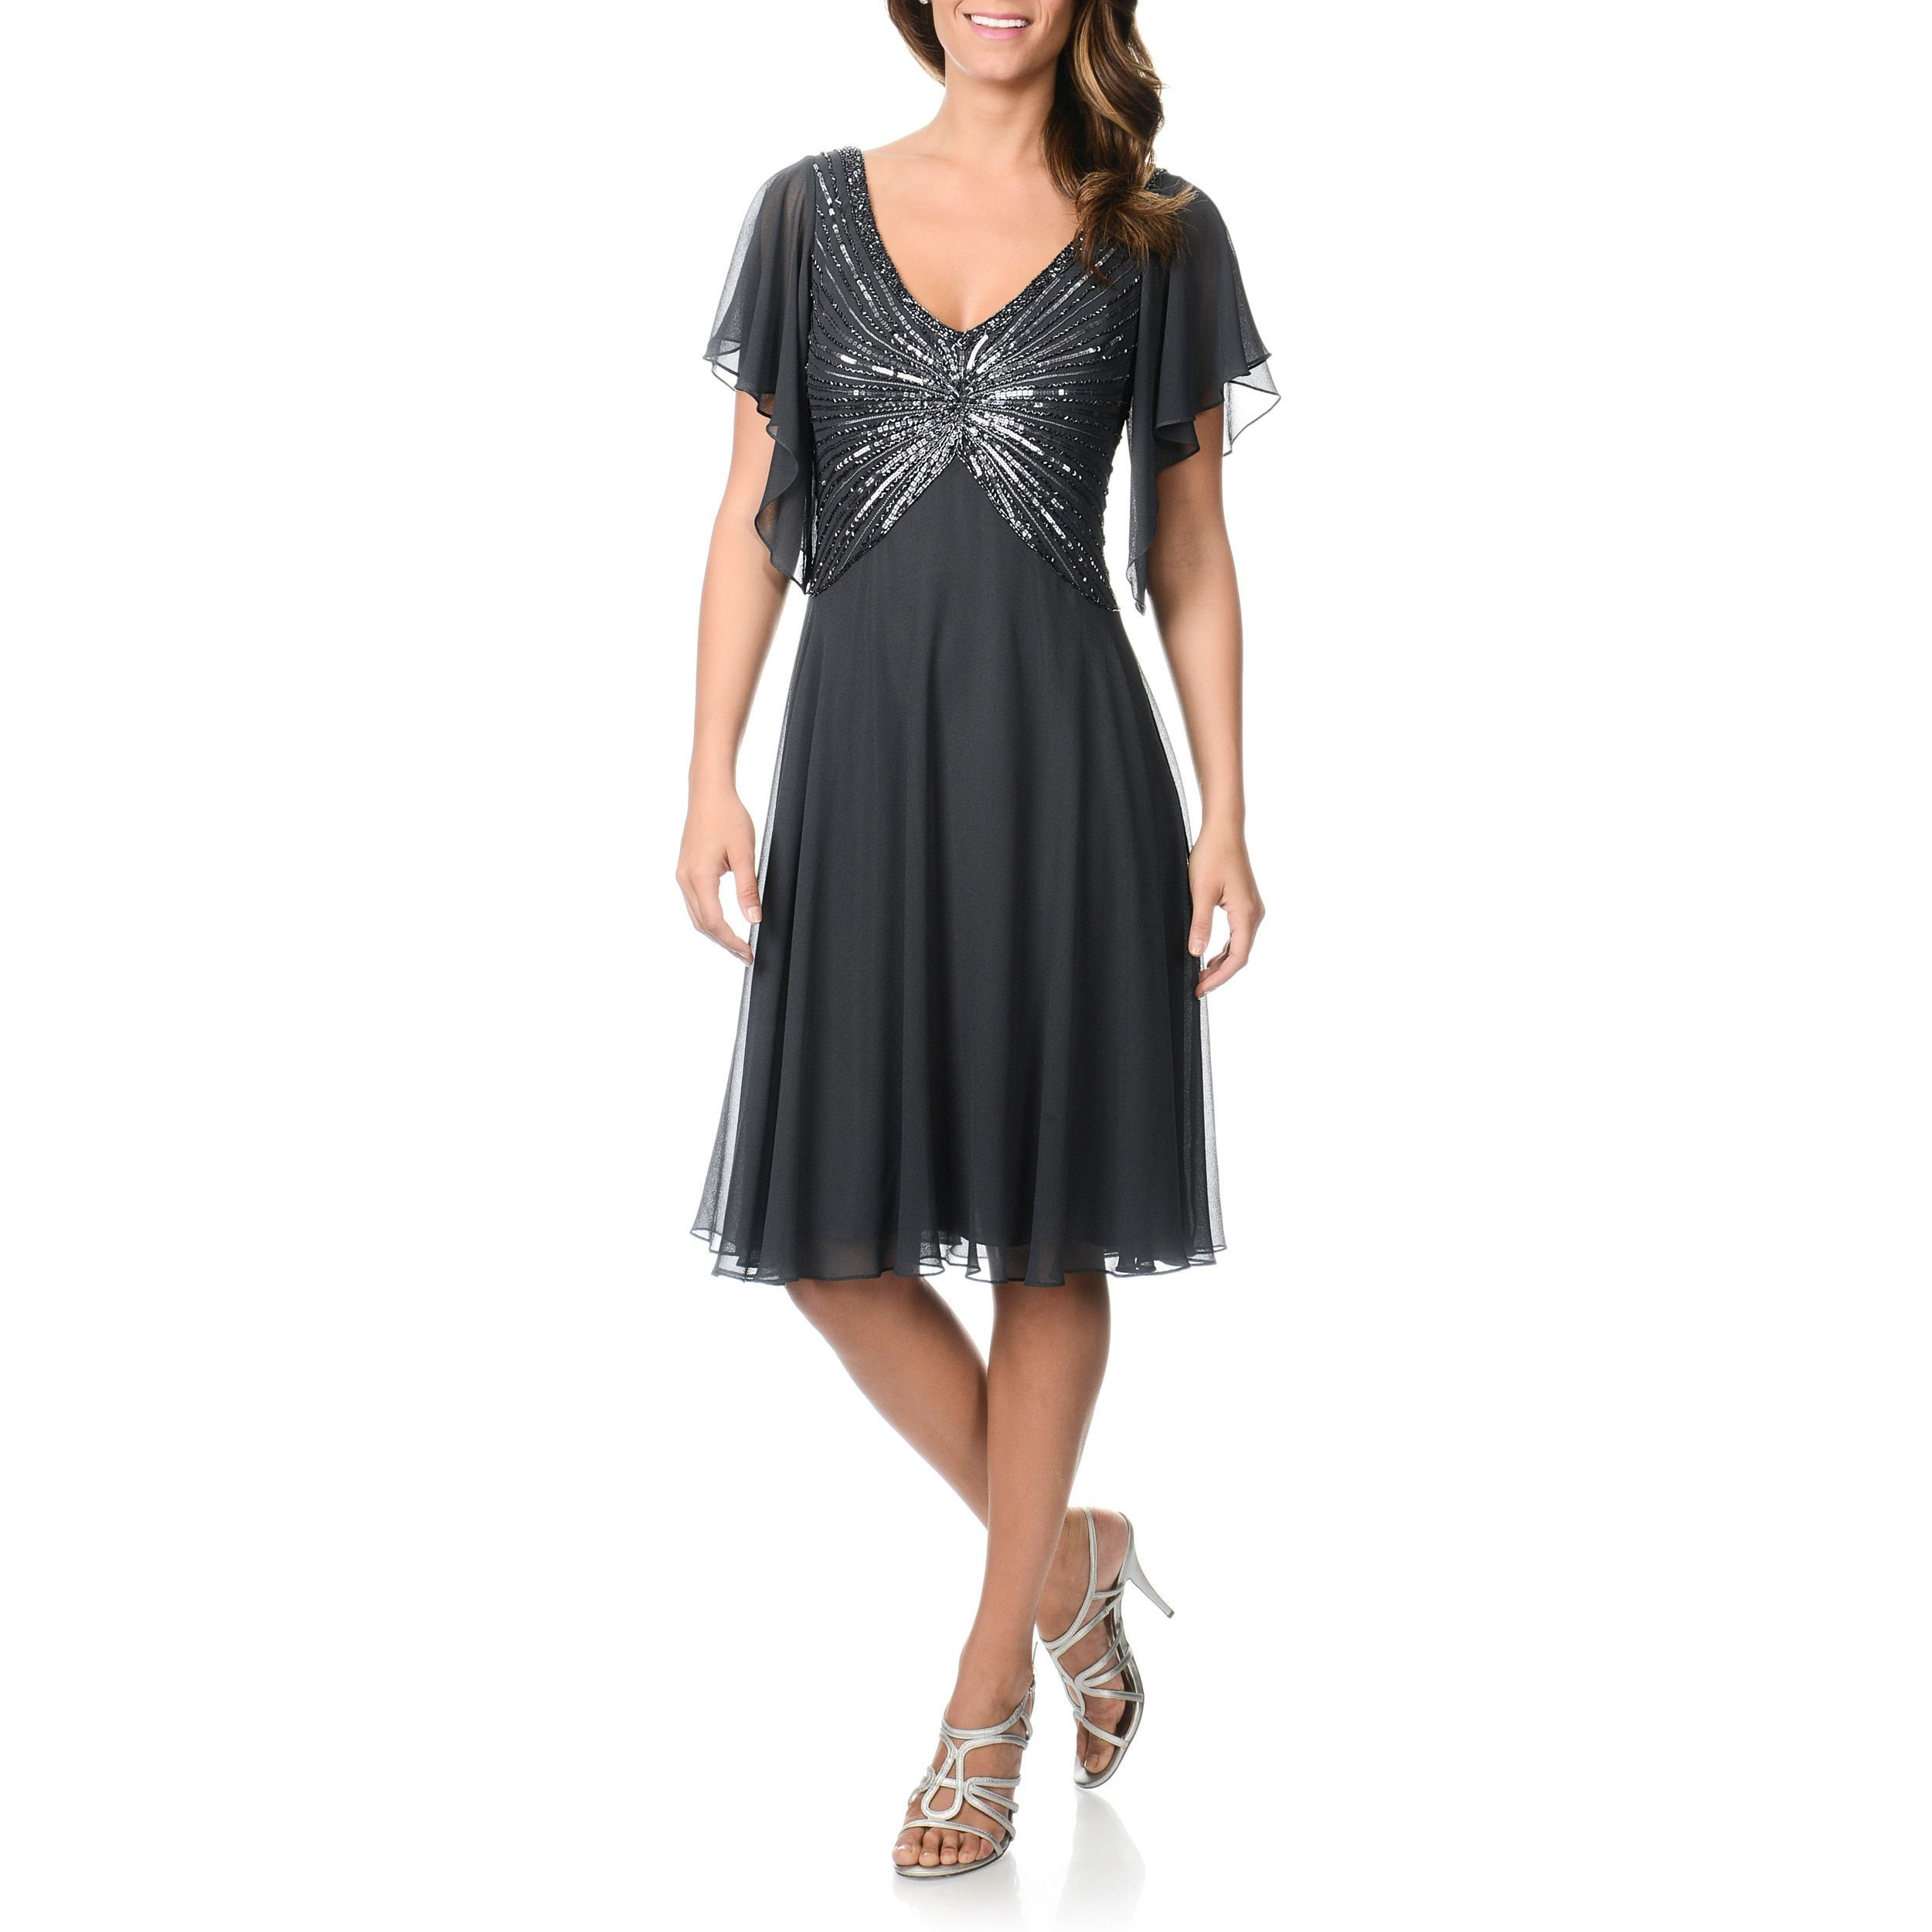 J laxmi womenus sequined flutter sleeve cocktail dress greygrey